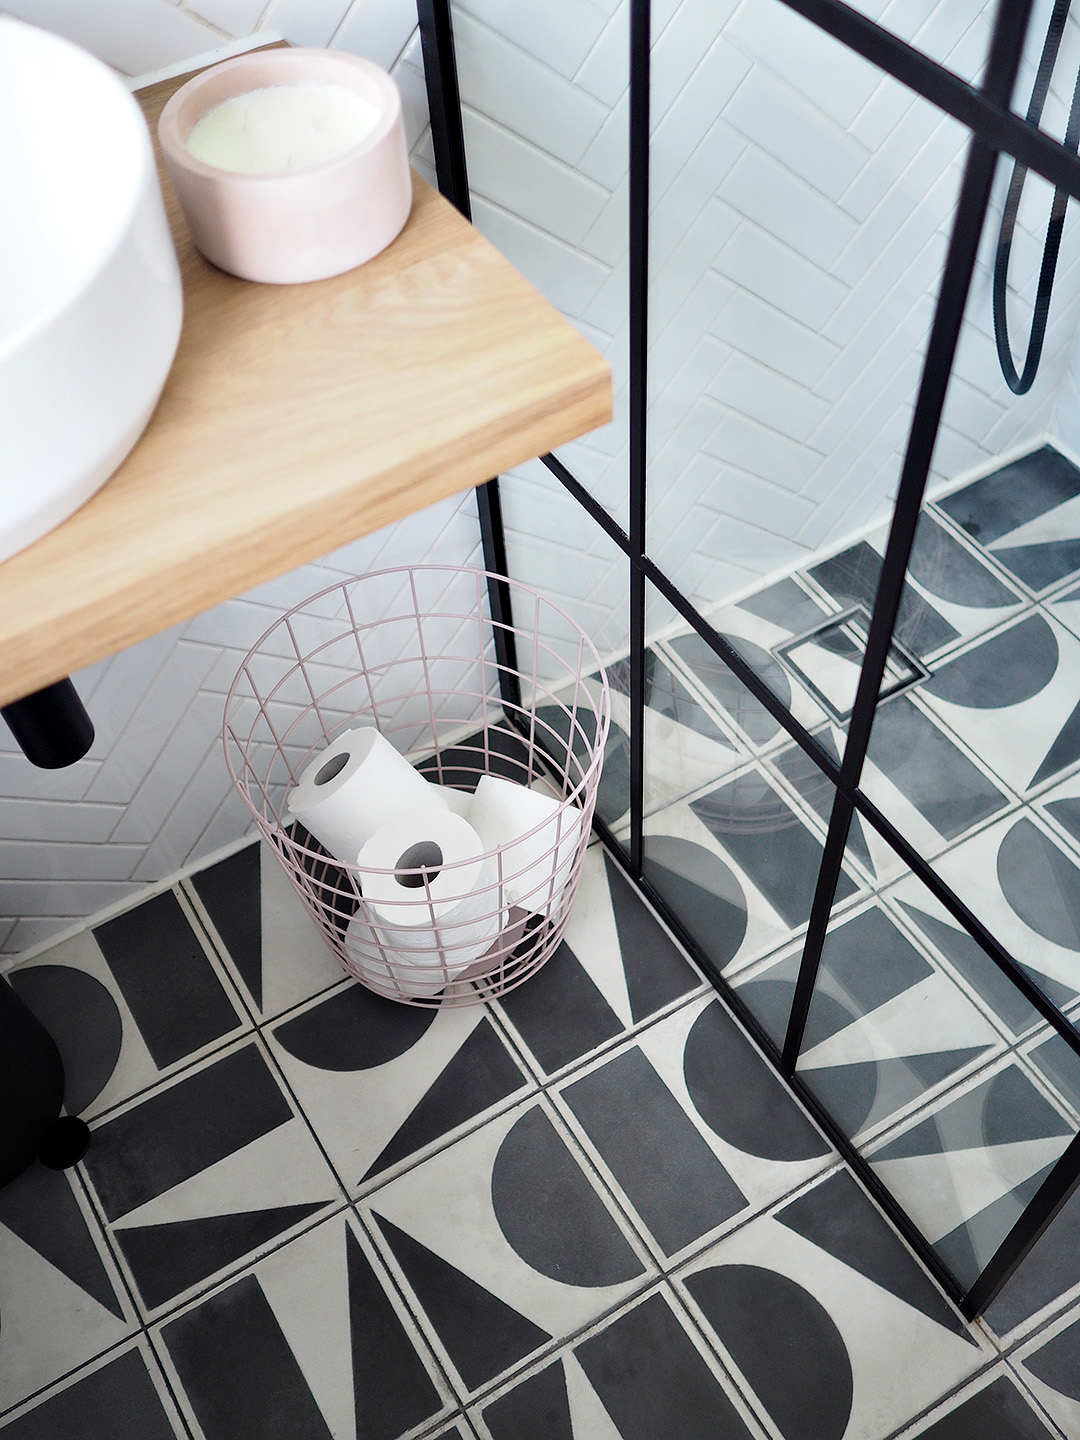 Monochrome Wetroom Black and White